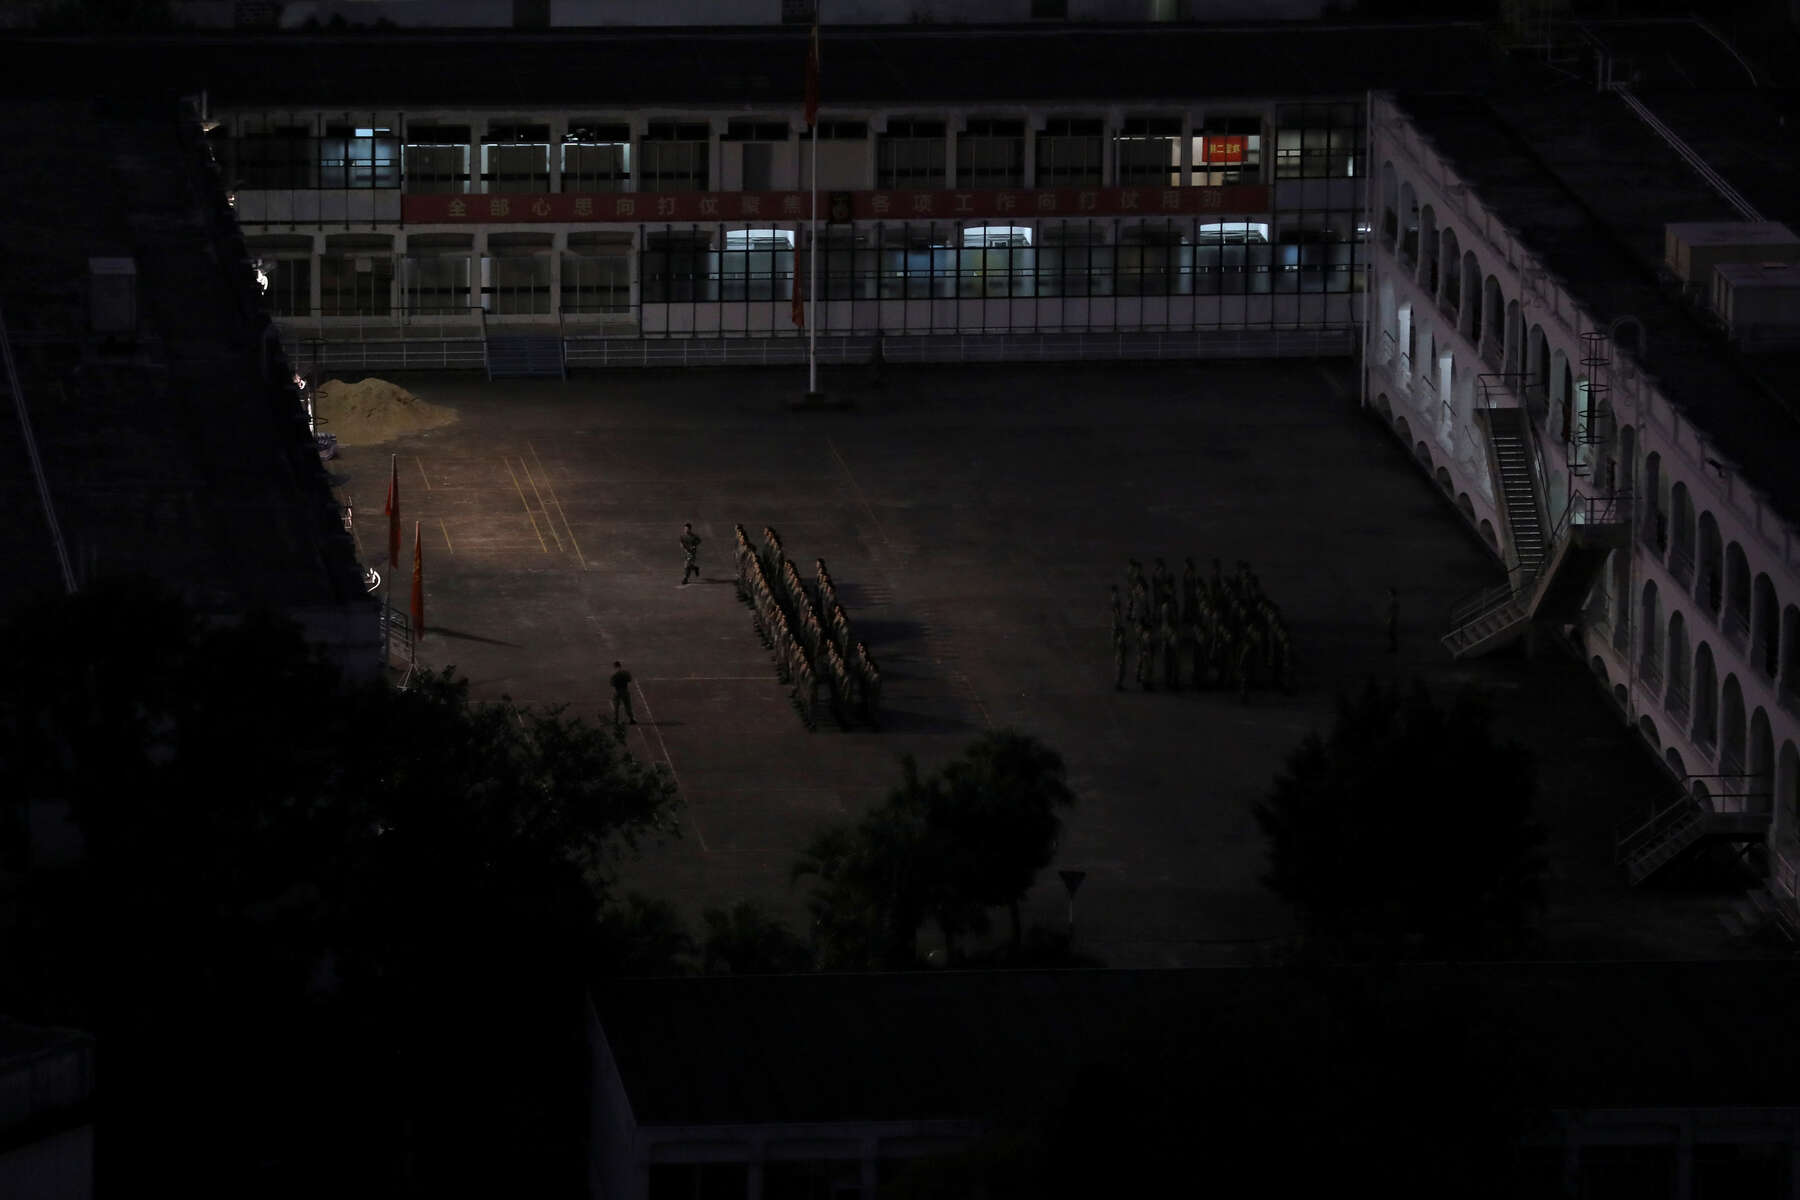 People's Liberation Army (PLA) soldiers stand in formation next to Hong Kong Polytechnic University (PolyU), Hong Kong, China November 23, 2019. The barracks where the PLA soldiers are housed, where they train and stay fit is located across the street from the University. There was a constant fear that the mainland Chinese government might send in military, risking reliving something like the Tiananmen Square massacre.